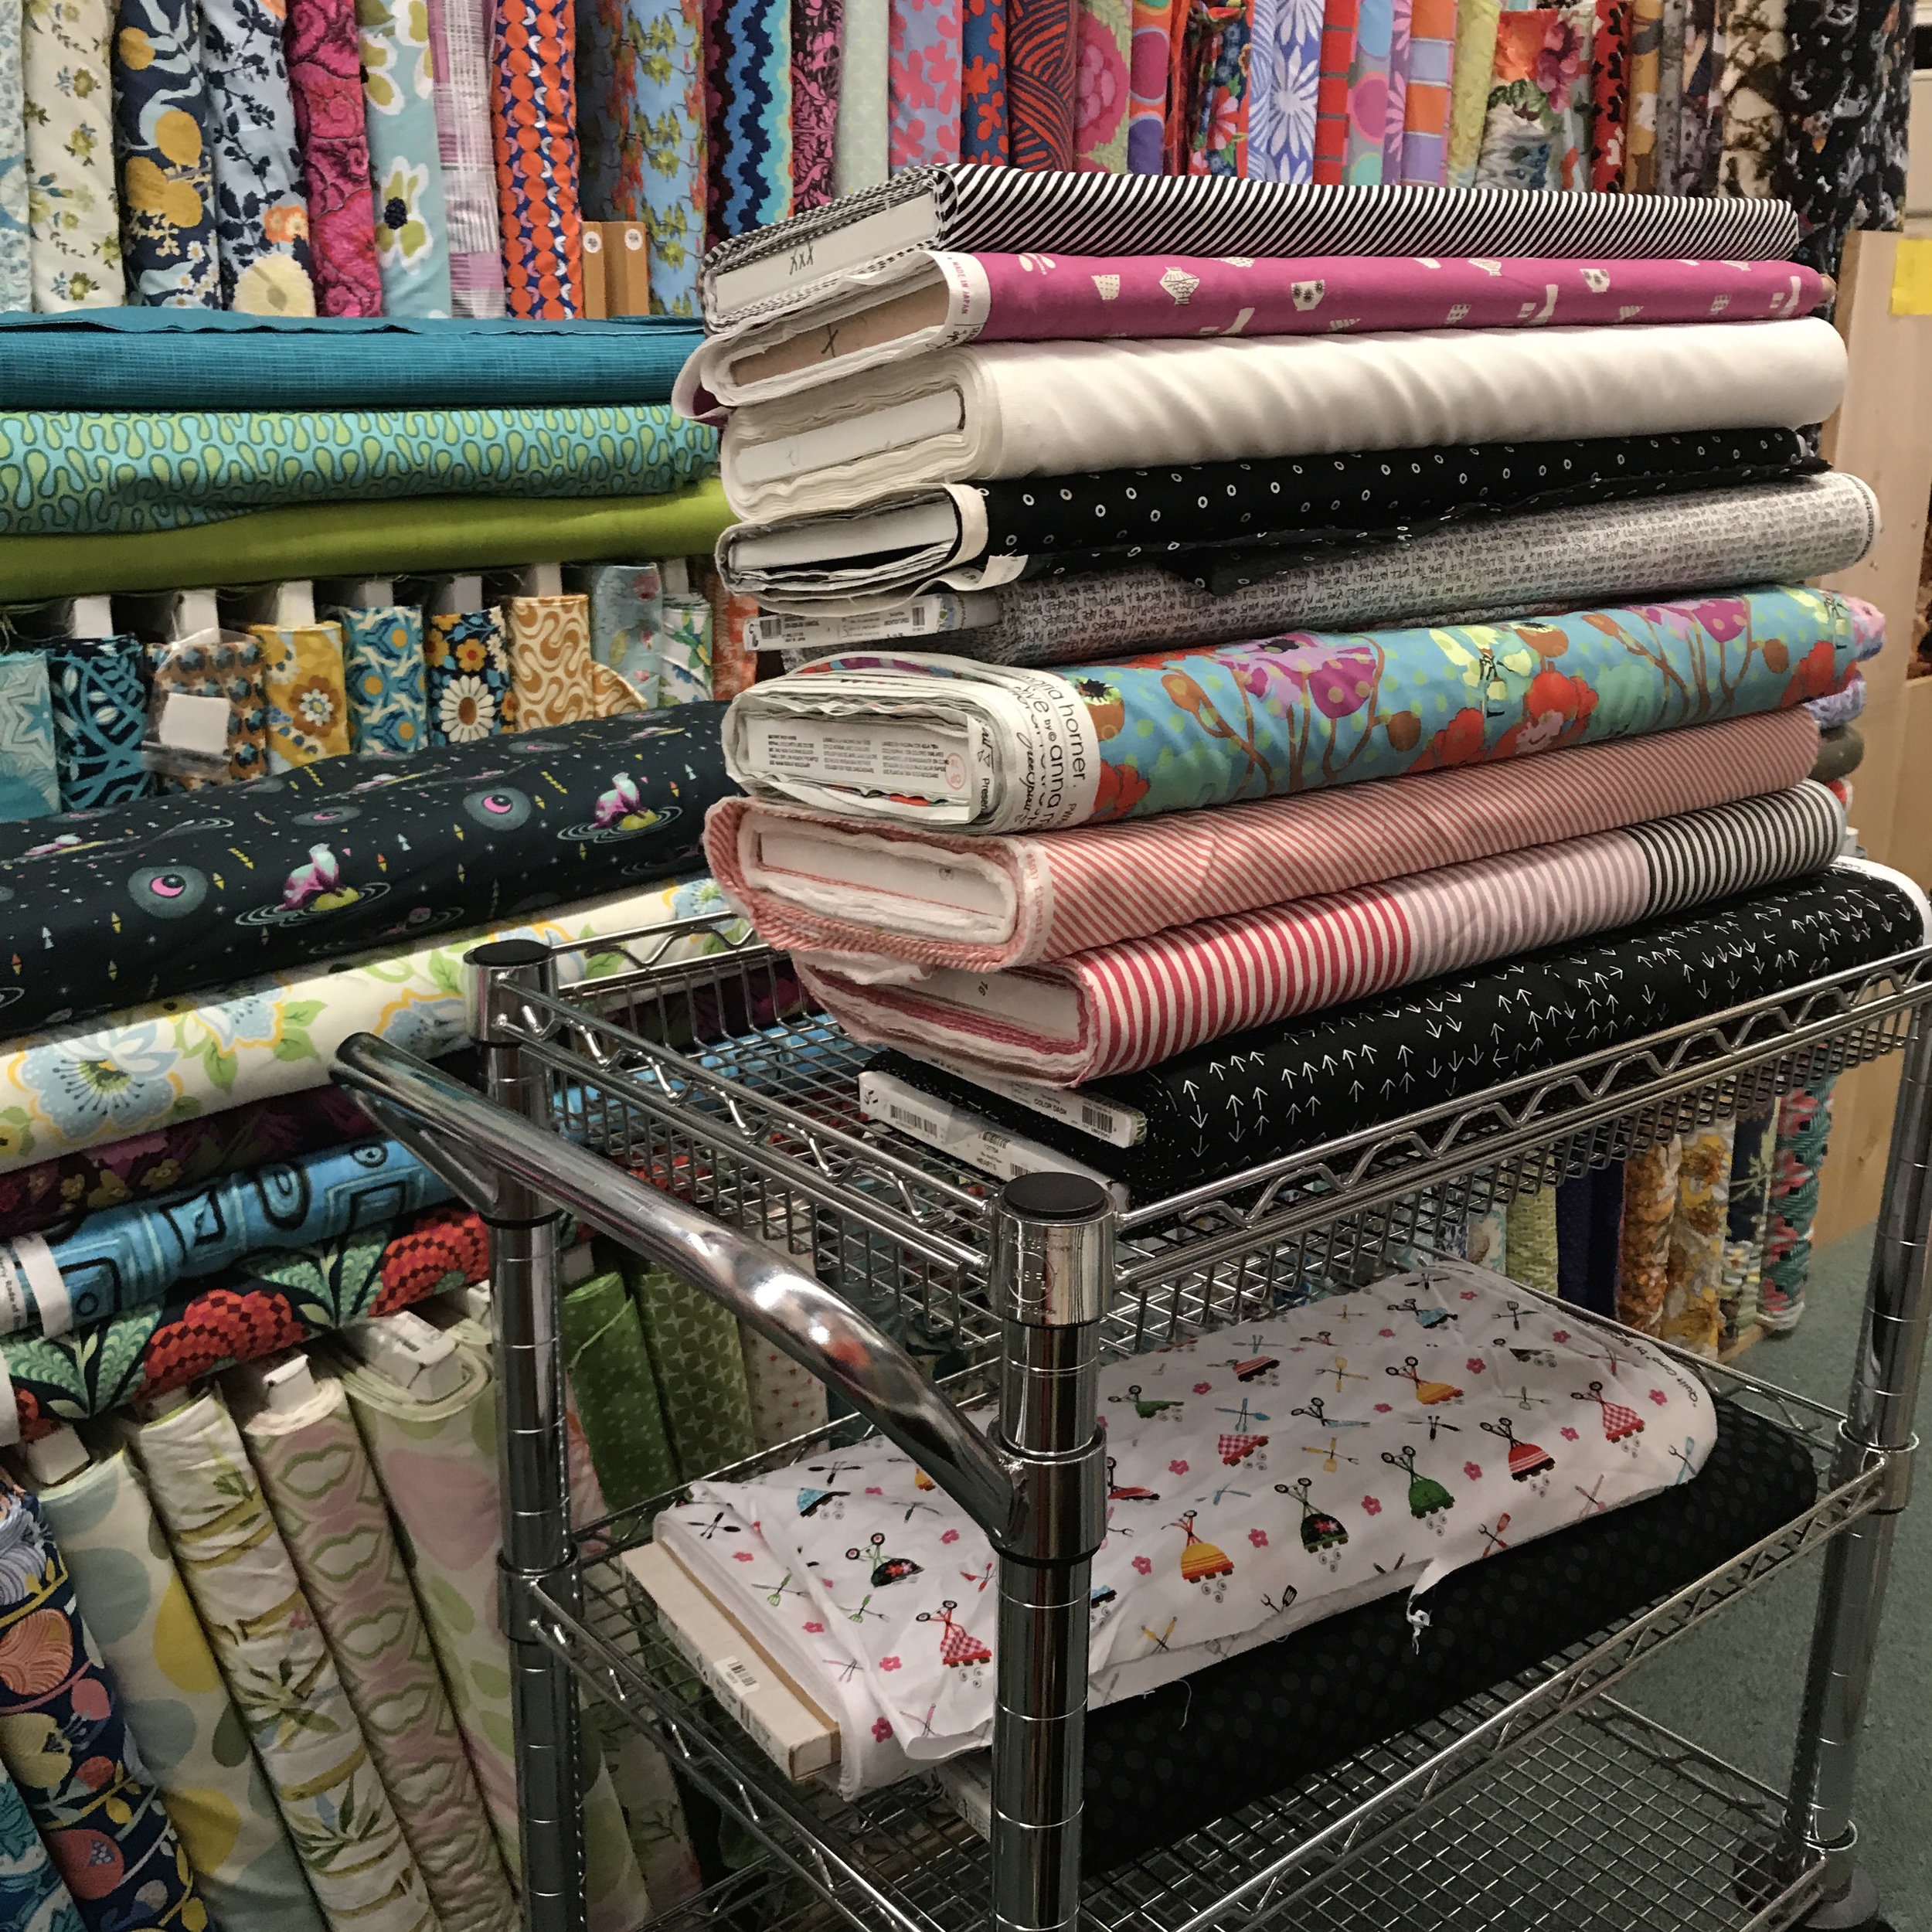 Fabric shopping at The Quilt Place